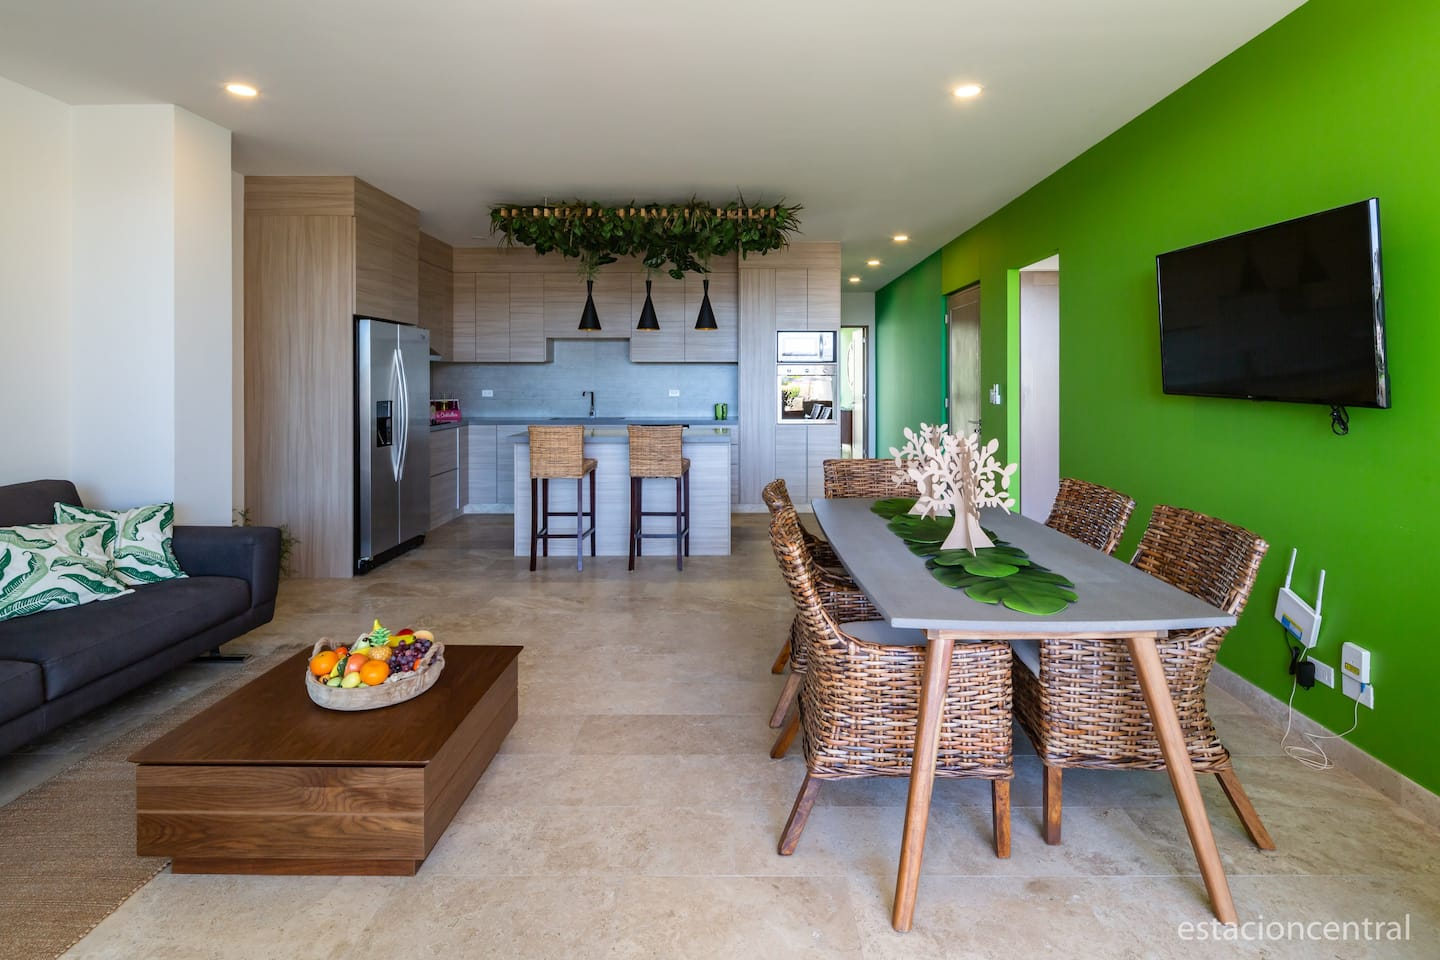 Image of Airbnb rental in San Jose del Cabo, Mexico